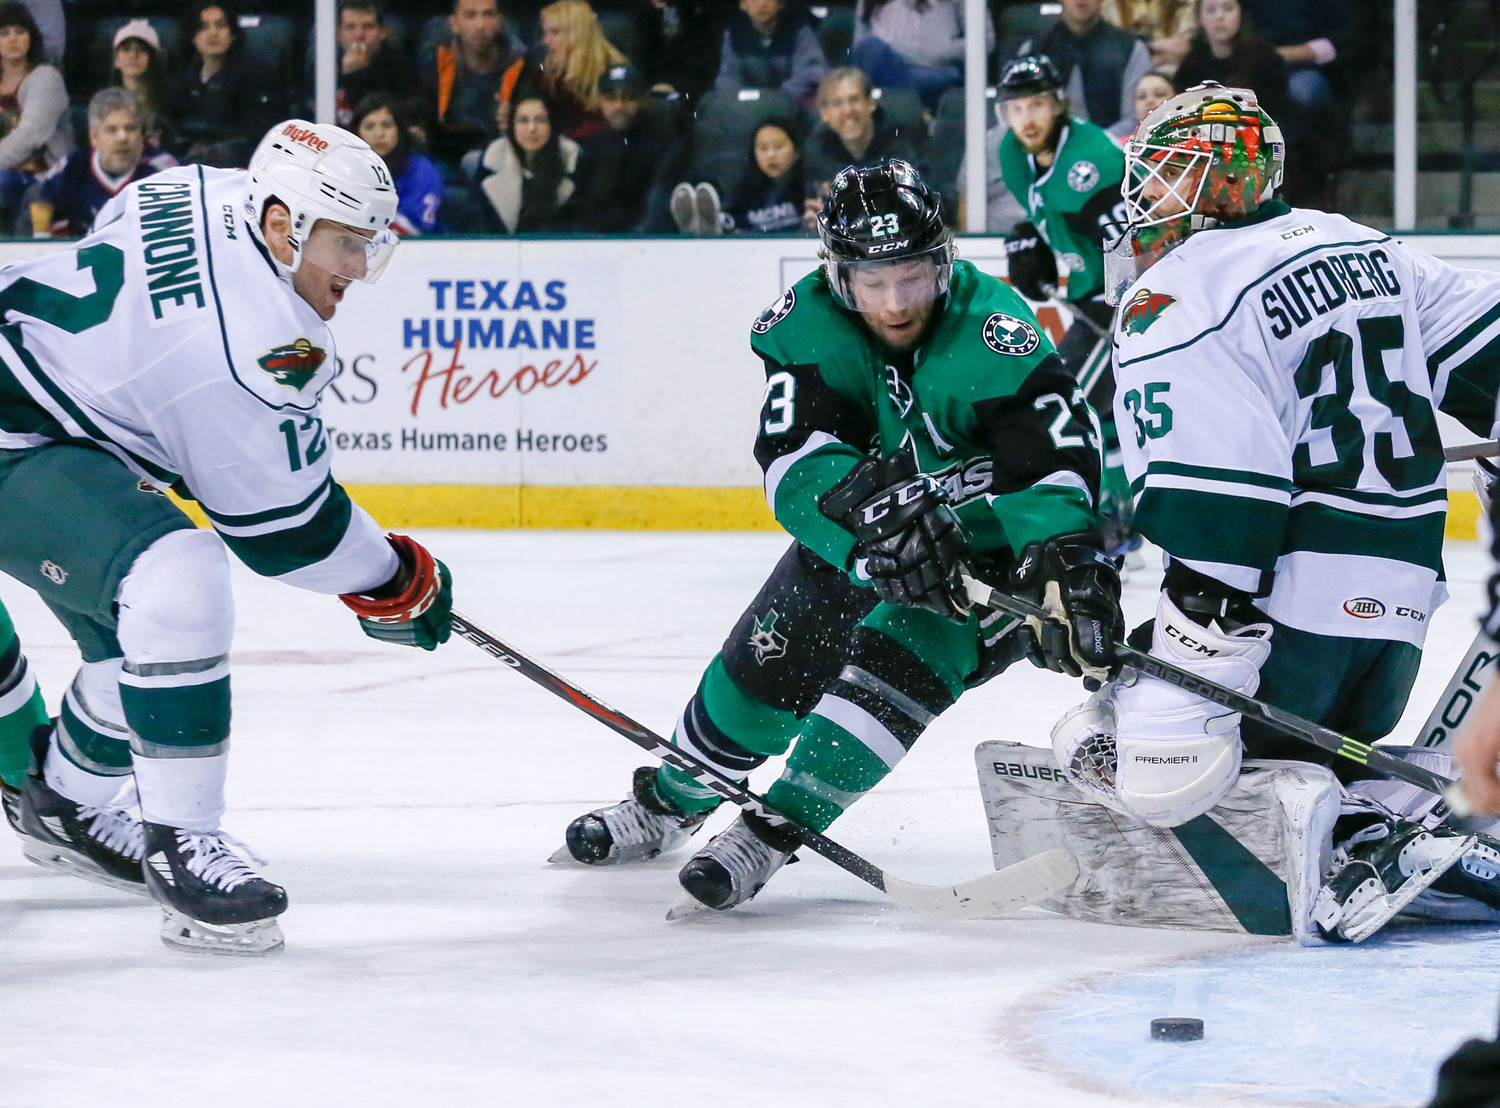 Travis Morin and the Texas Stars begin the playoffs Thursday at 7 p.m. against the Ontario Reign.